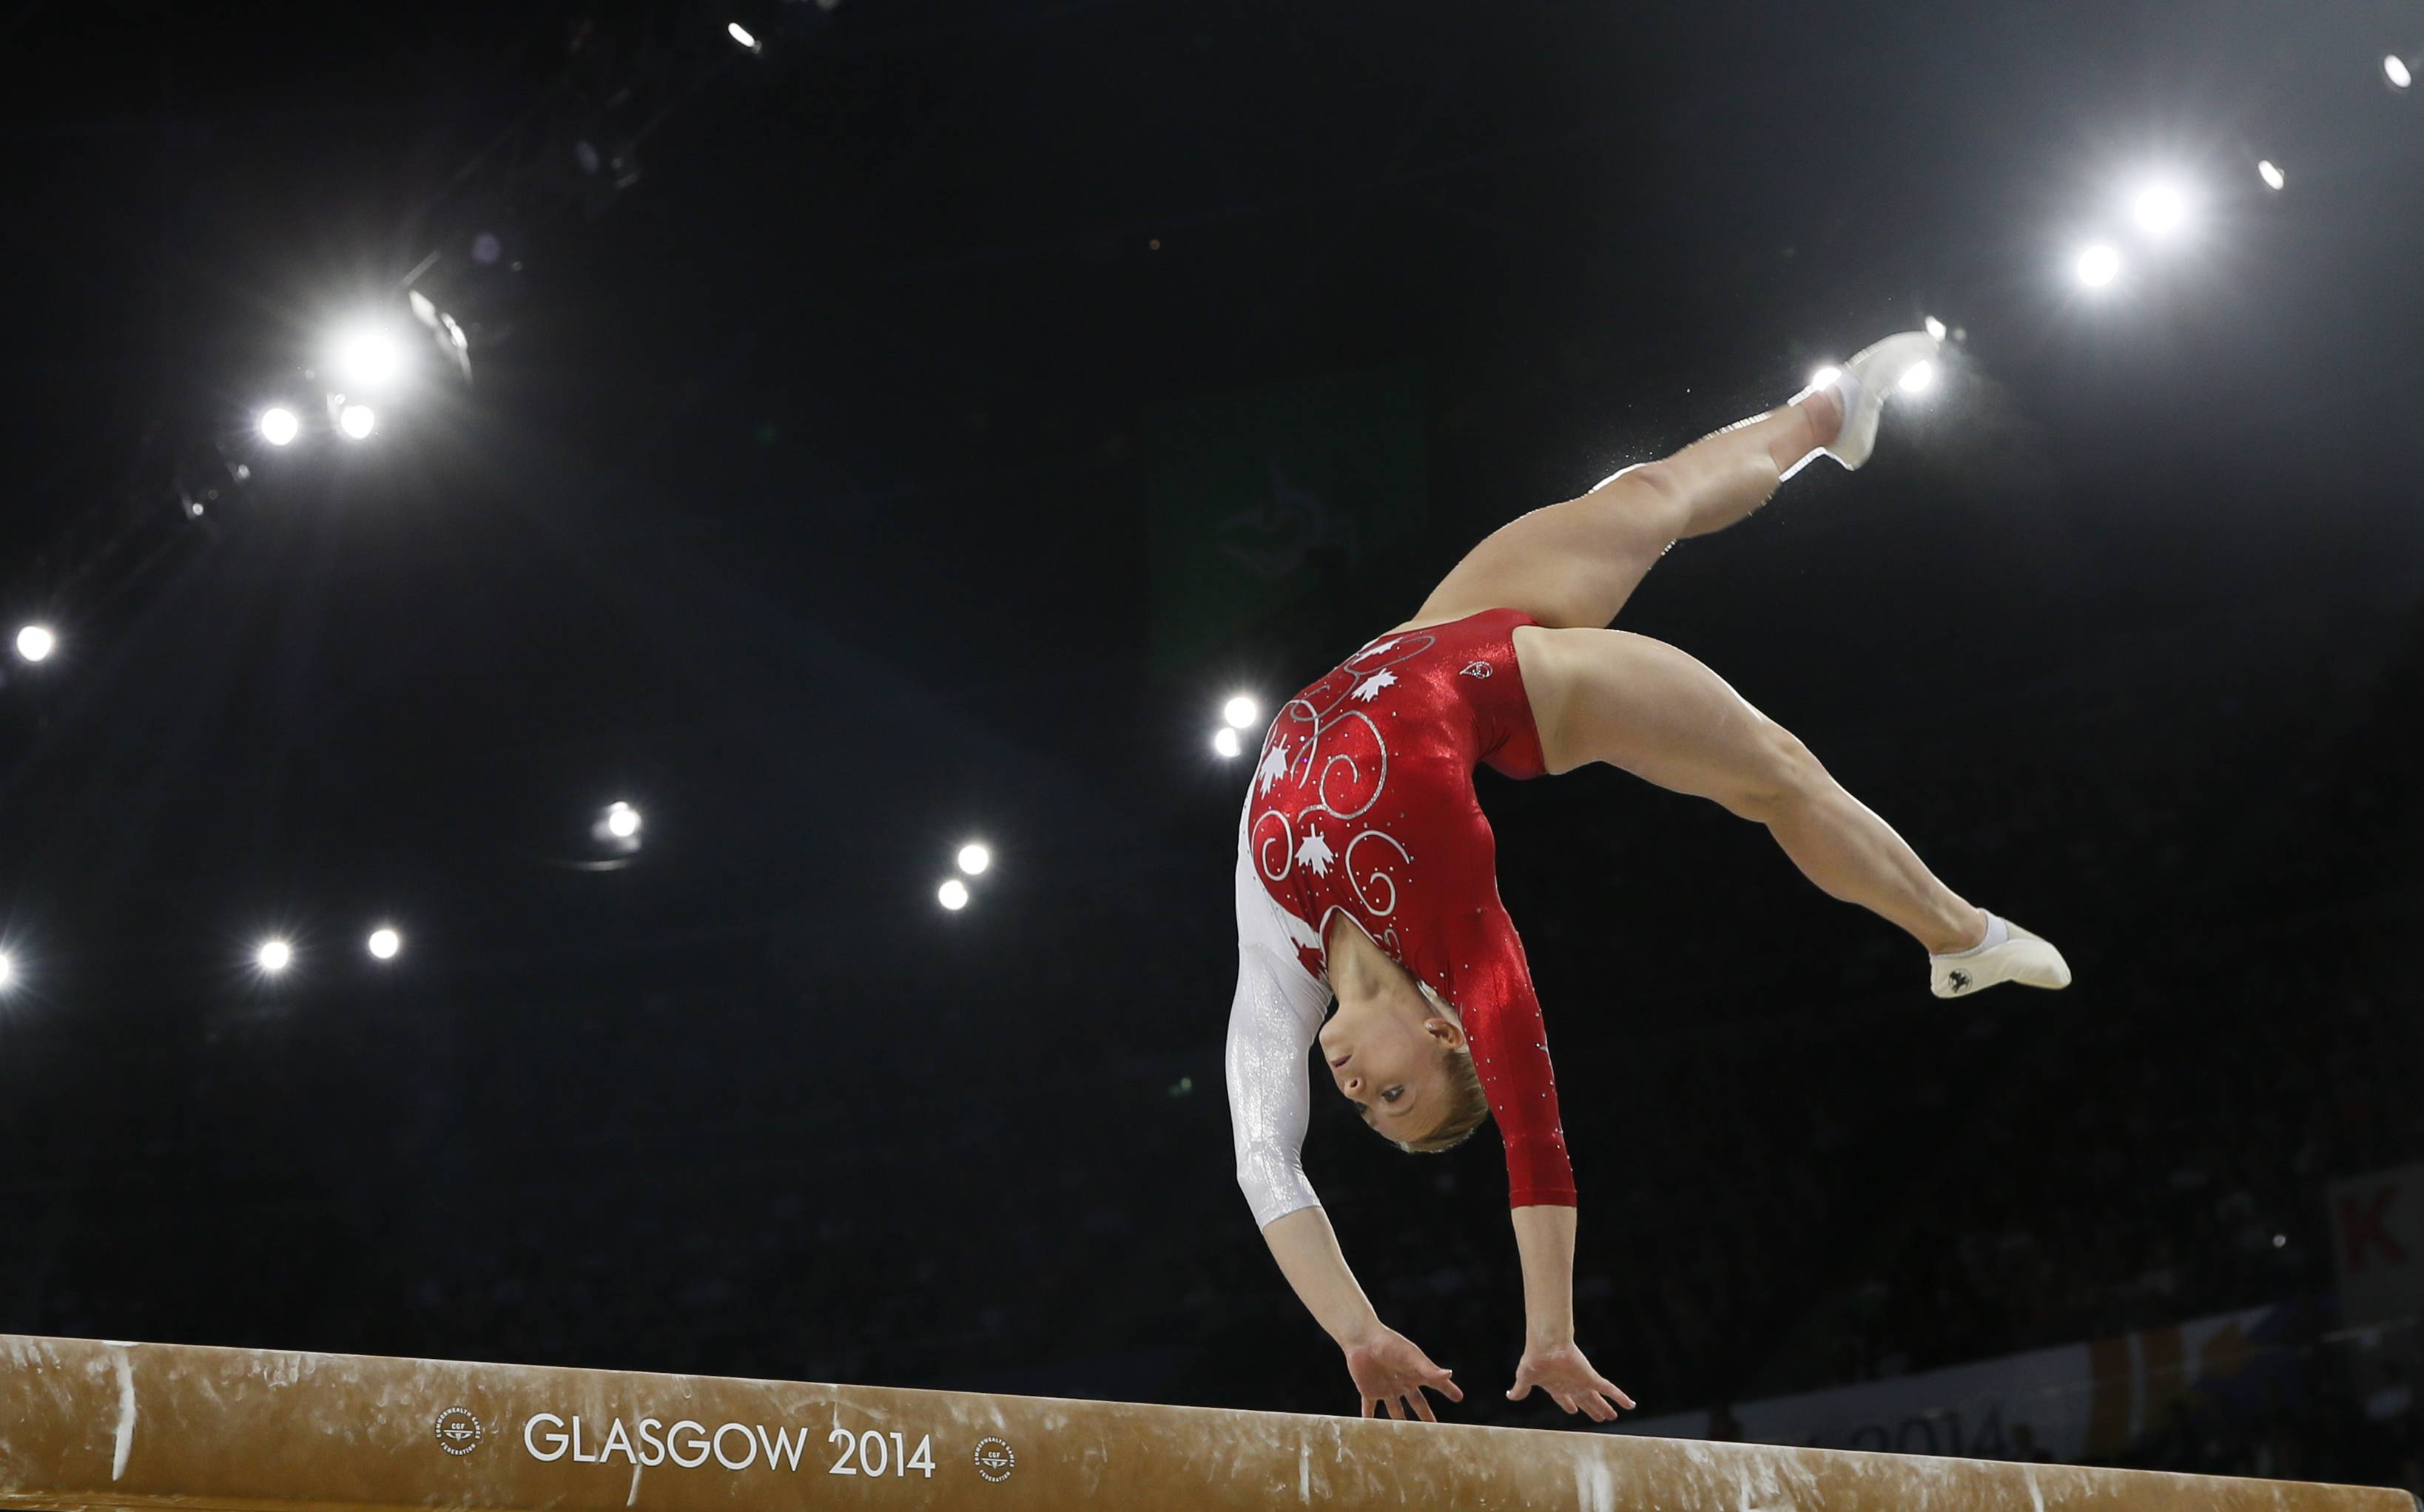 Elsabeth Black of Canada performs her routine during the women's individual beam final at the Commonwealth Games Glasgow 2014, in Glasgow, Scotland, Friday, Aug., 1, 2014. Black won the gold medal.